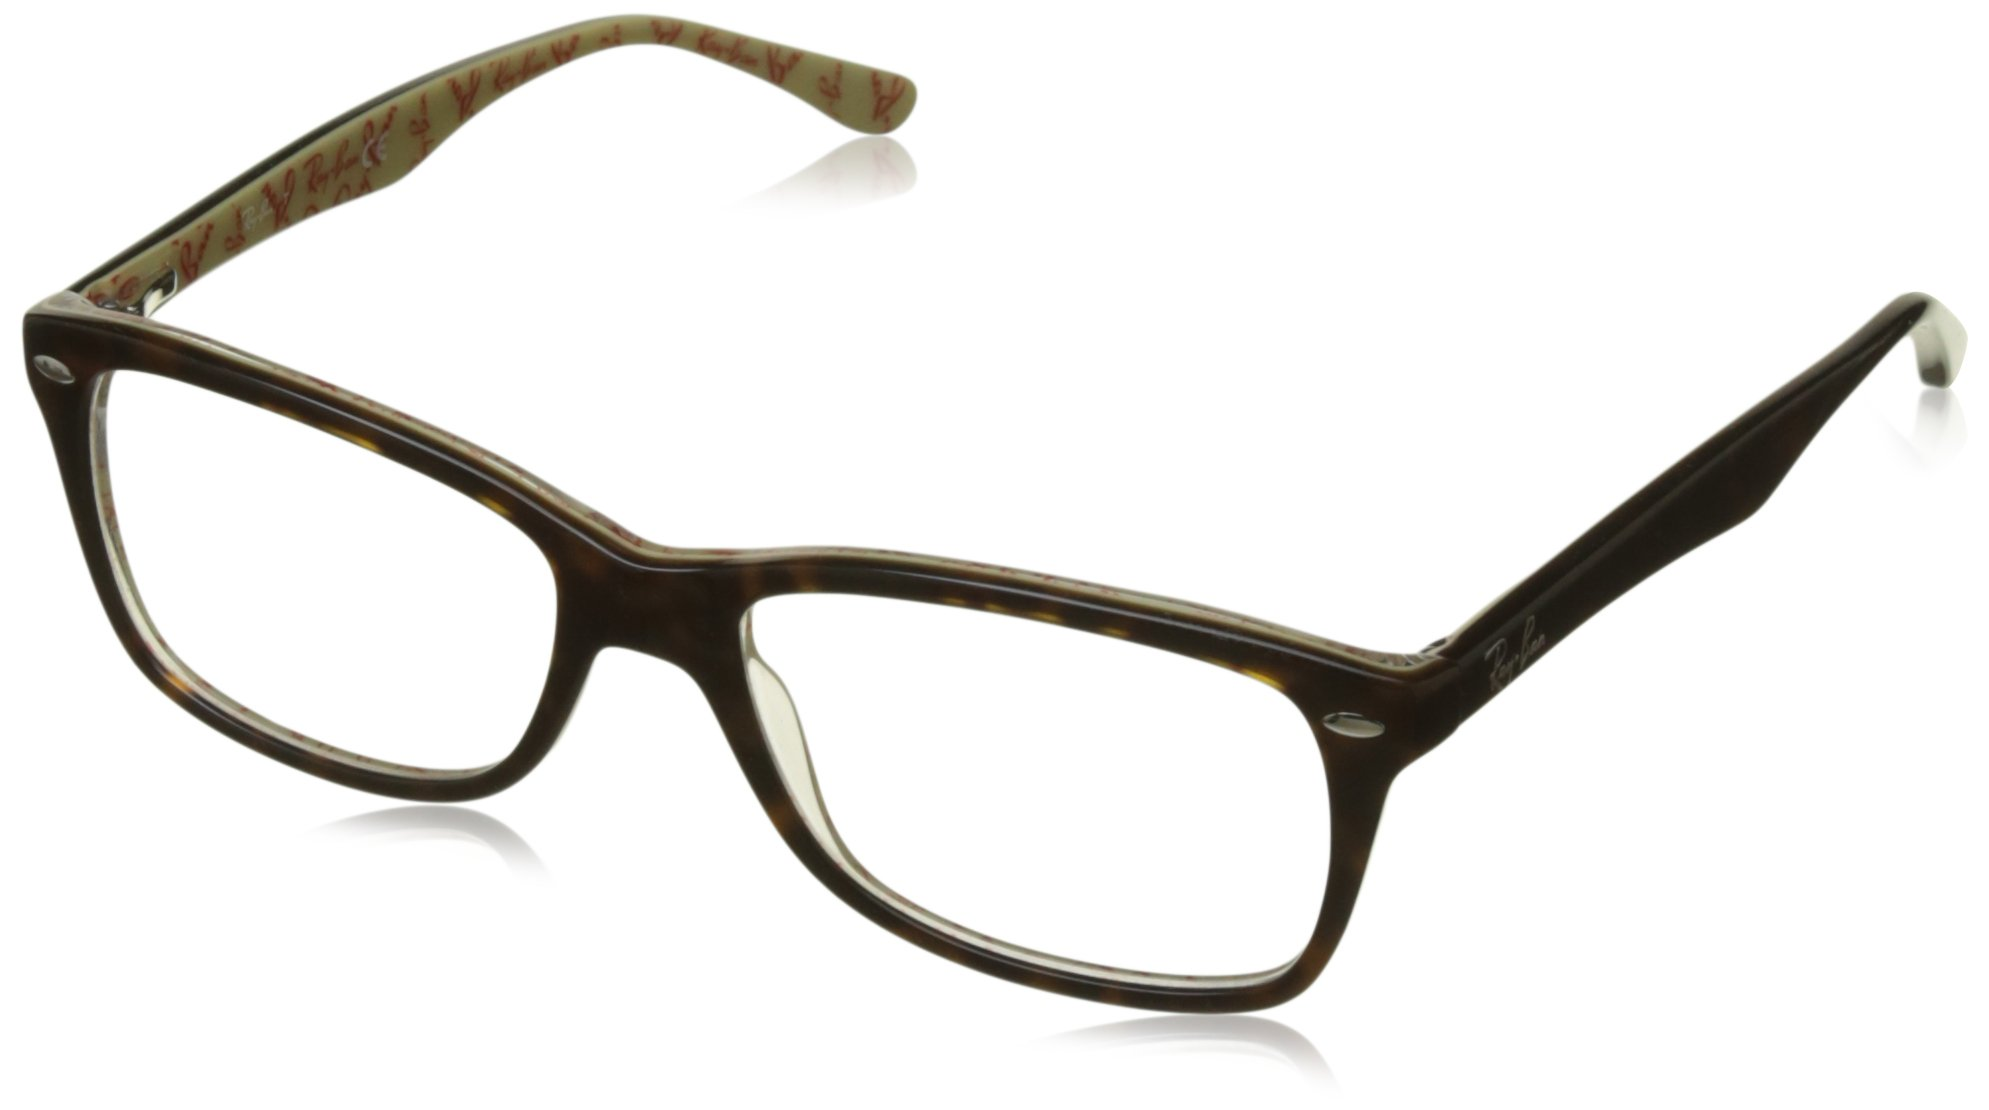 RAY-BAN RX5228 Square Eyeglass Frames, Dark Tortoise On Beige Texture/Demo Lens, 55 mm by Ray-Ban